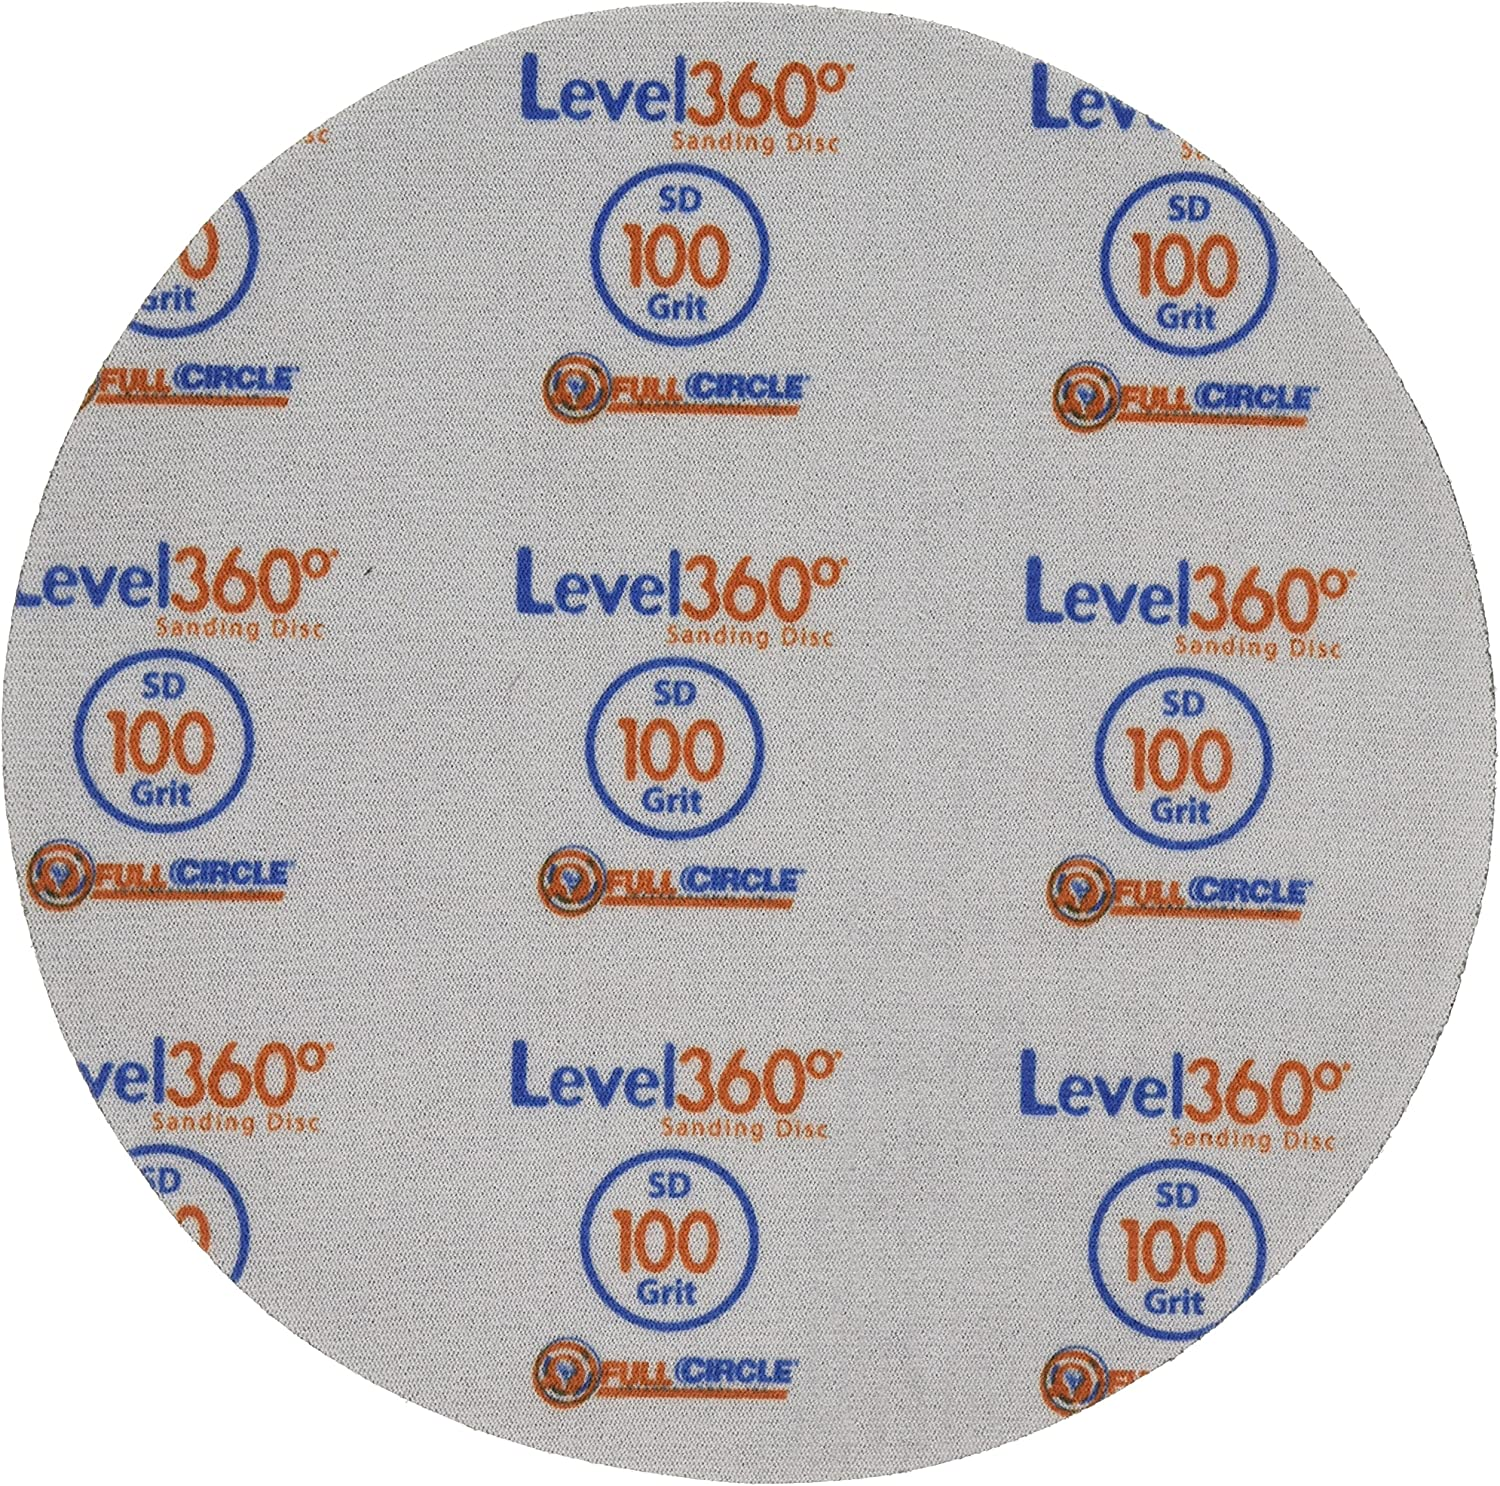 SD100-5 8-3//4 Full Circle International Inc Level360 Sanding Disc 100 Grit for use with Radius360 Sanding Tool or Drywall Power Sanding Tools